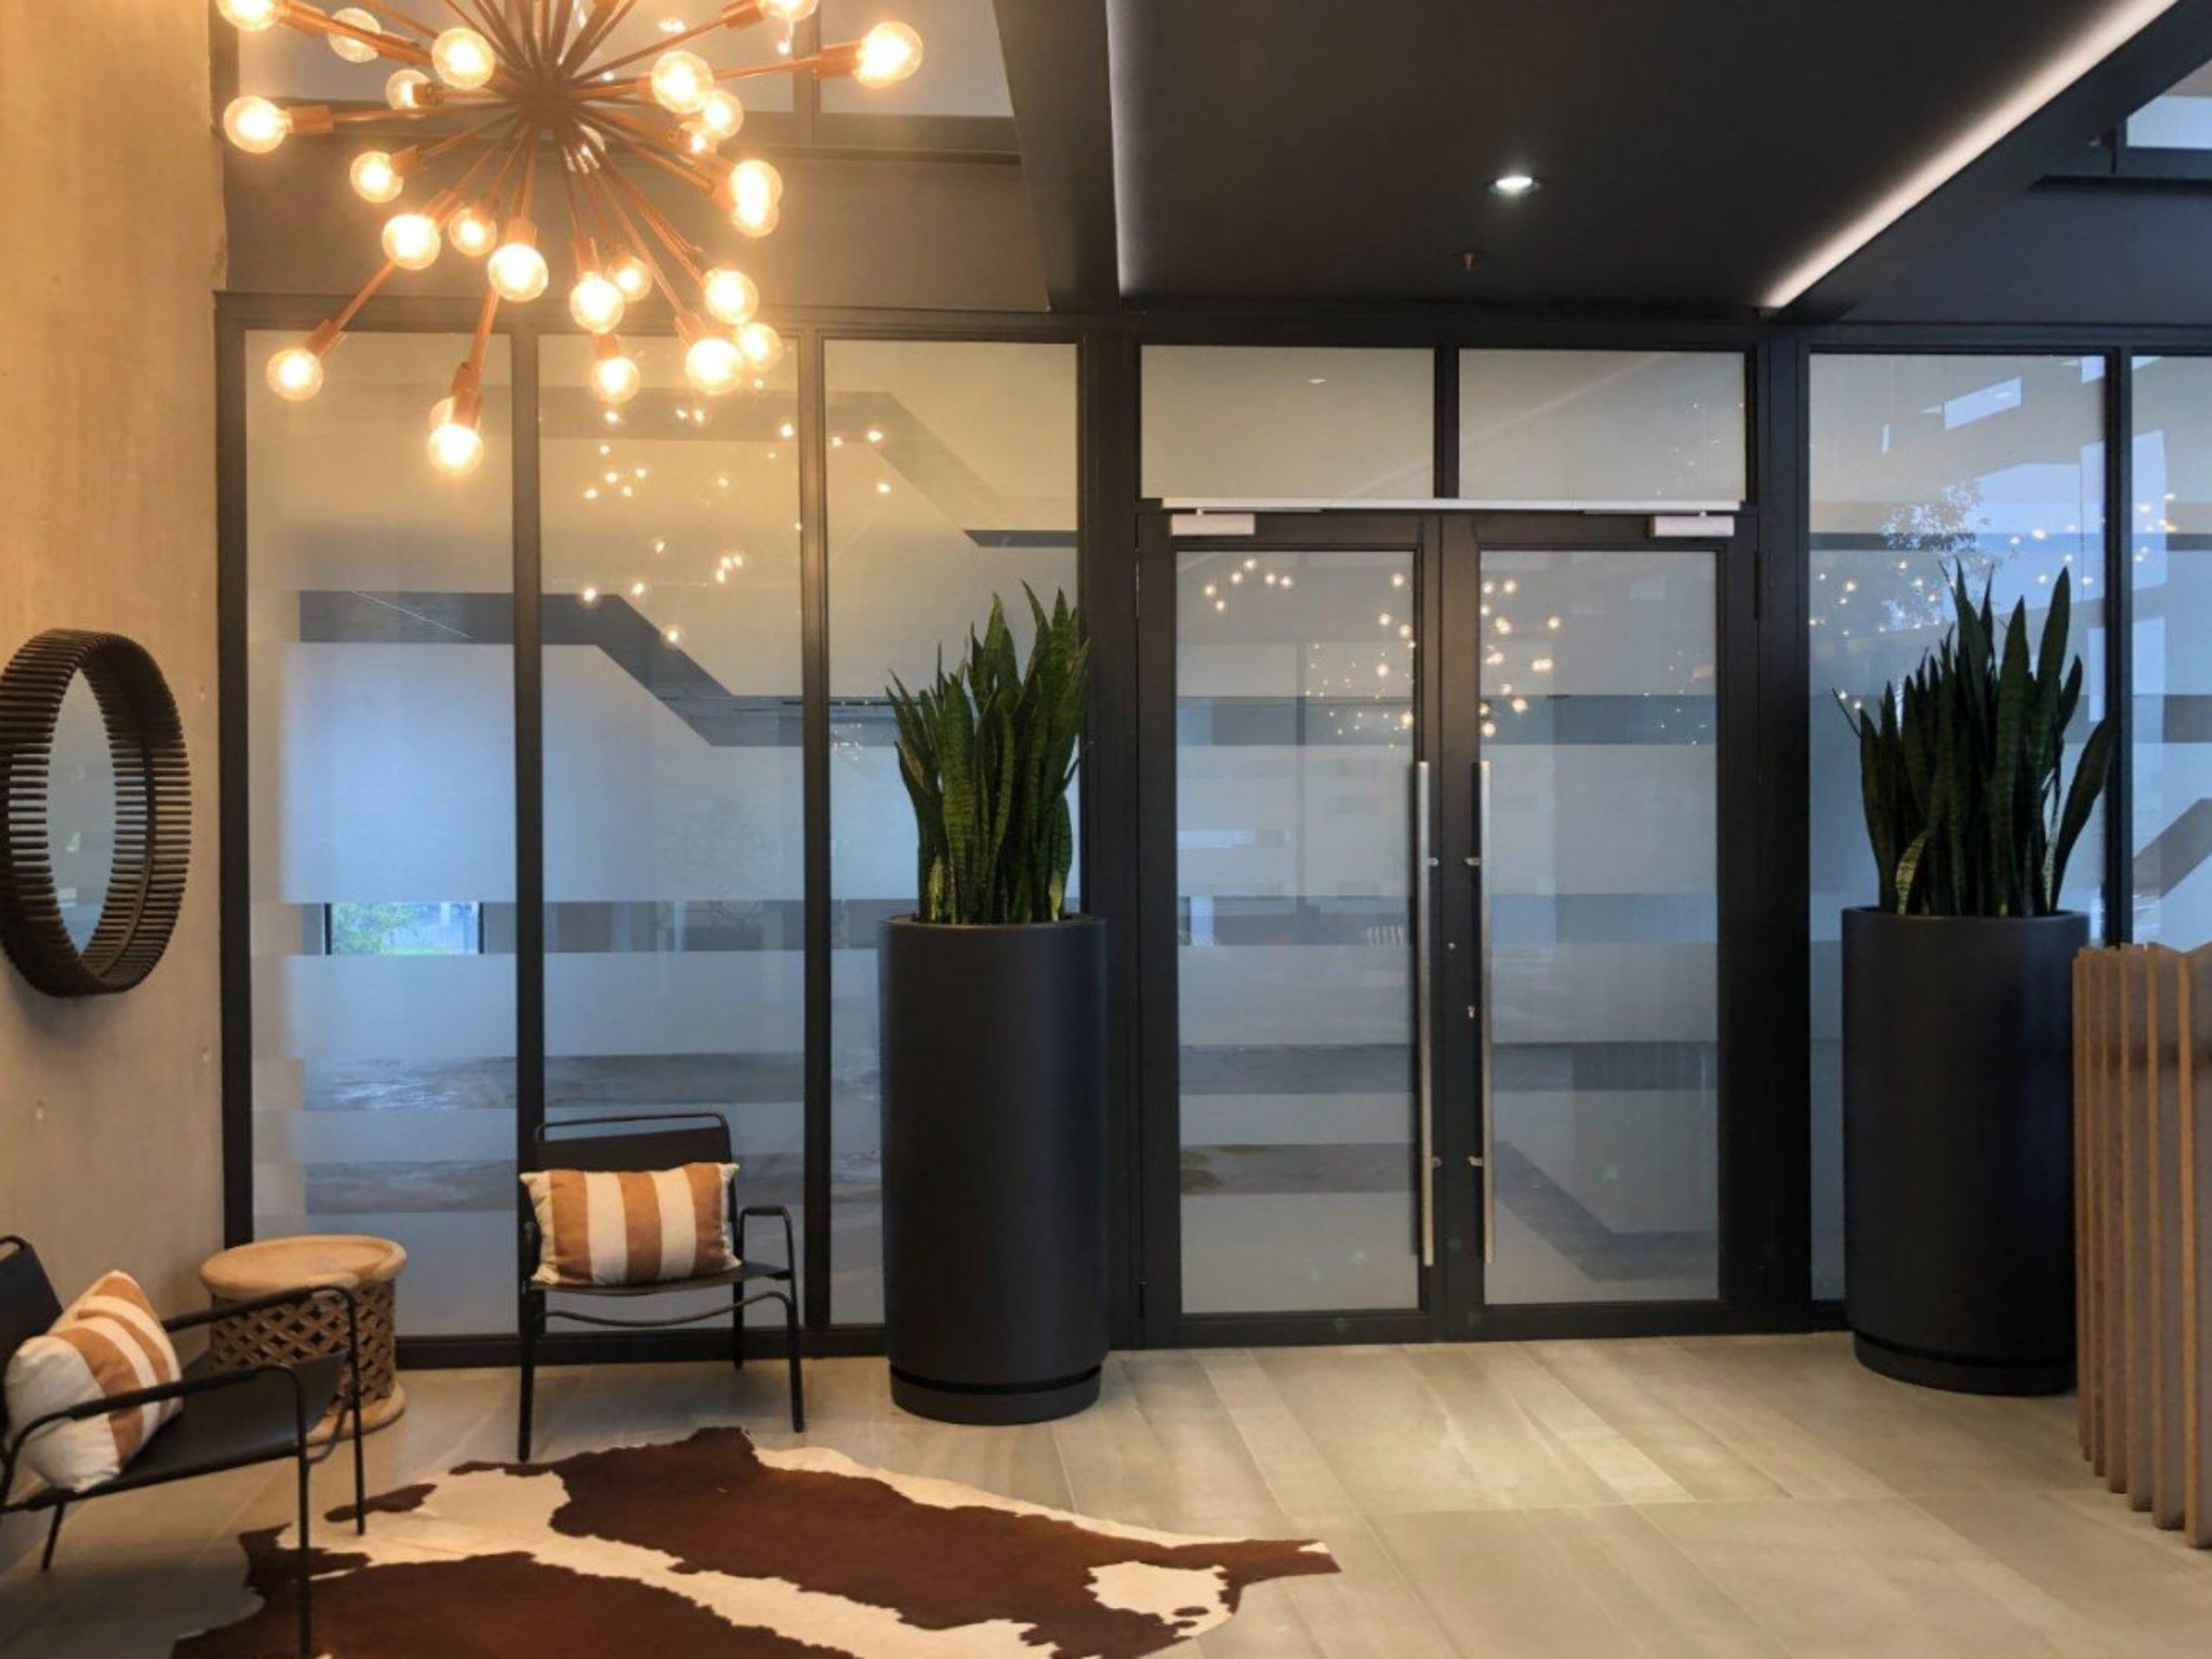 Commercial Property to Rent Waterfall, Midrand